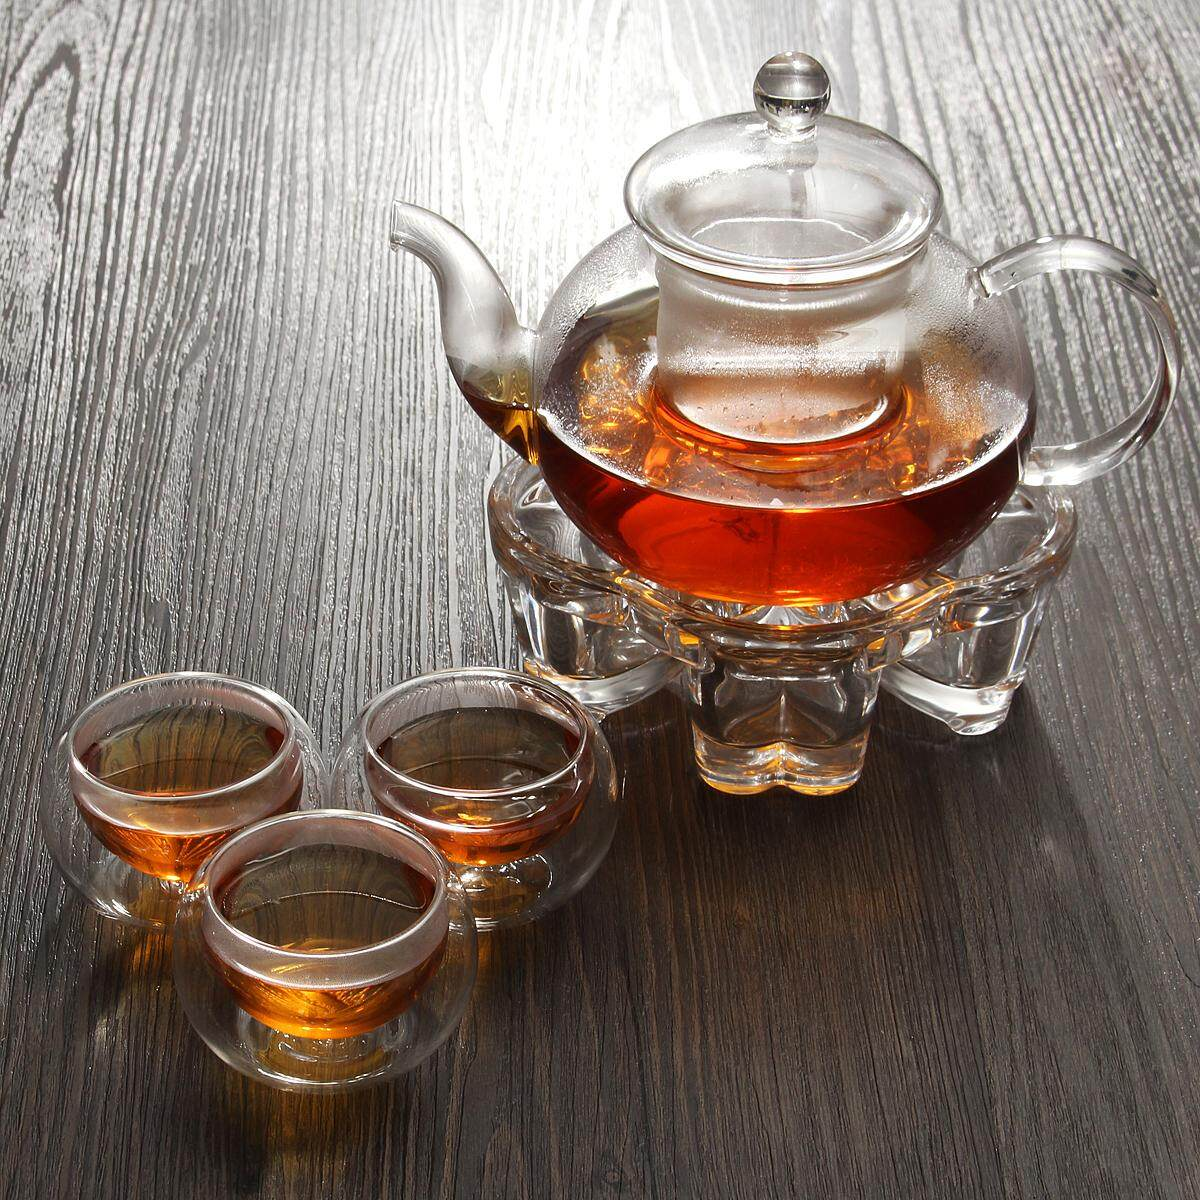 600ml High Borosilicate Glass Teapot Set + Crystal Base + 6 Double Wall Tea Cups By Moonbeam.